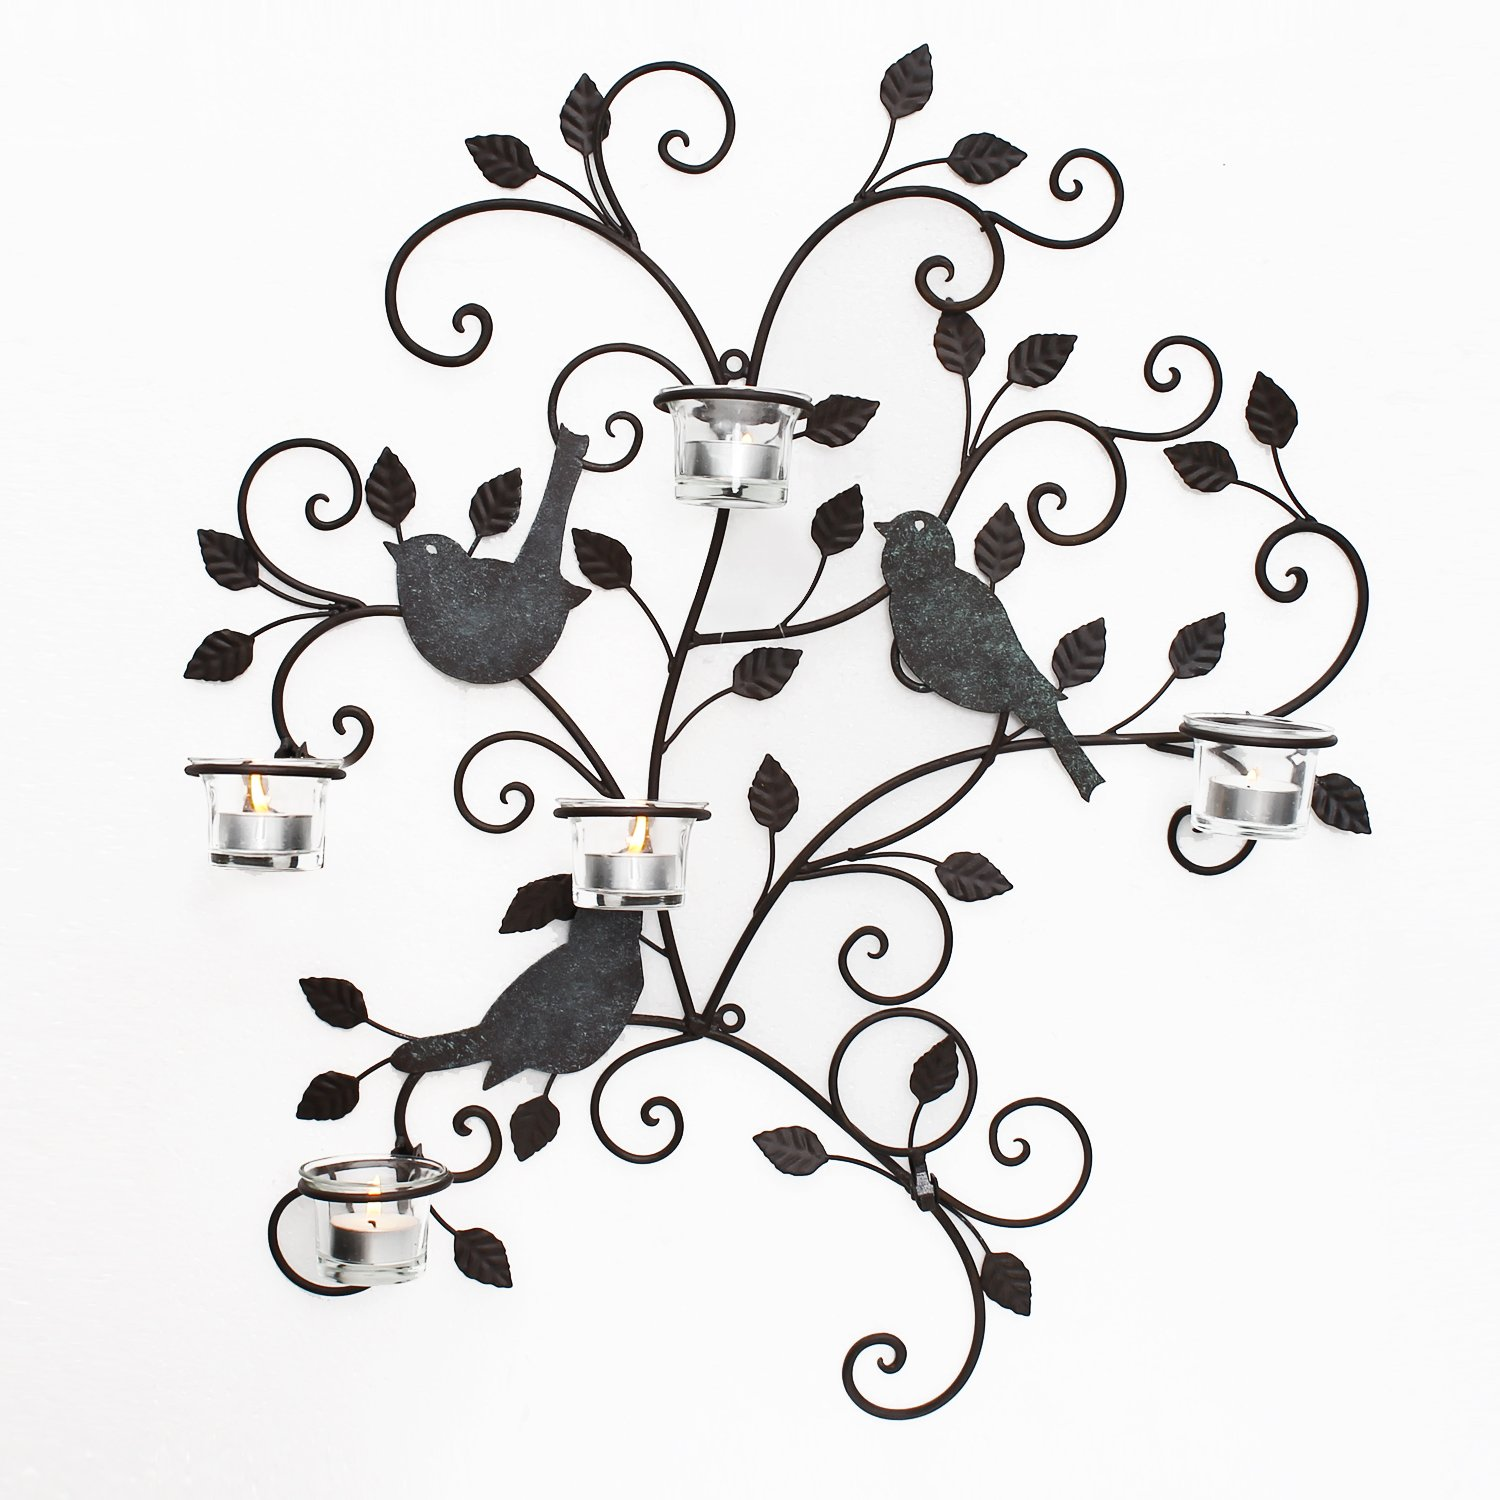 Asense Decorative Metal Wall Art Candle Holder Wall with Birds Style, Sconce Plaque, Tea Light Holder.